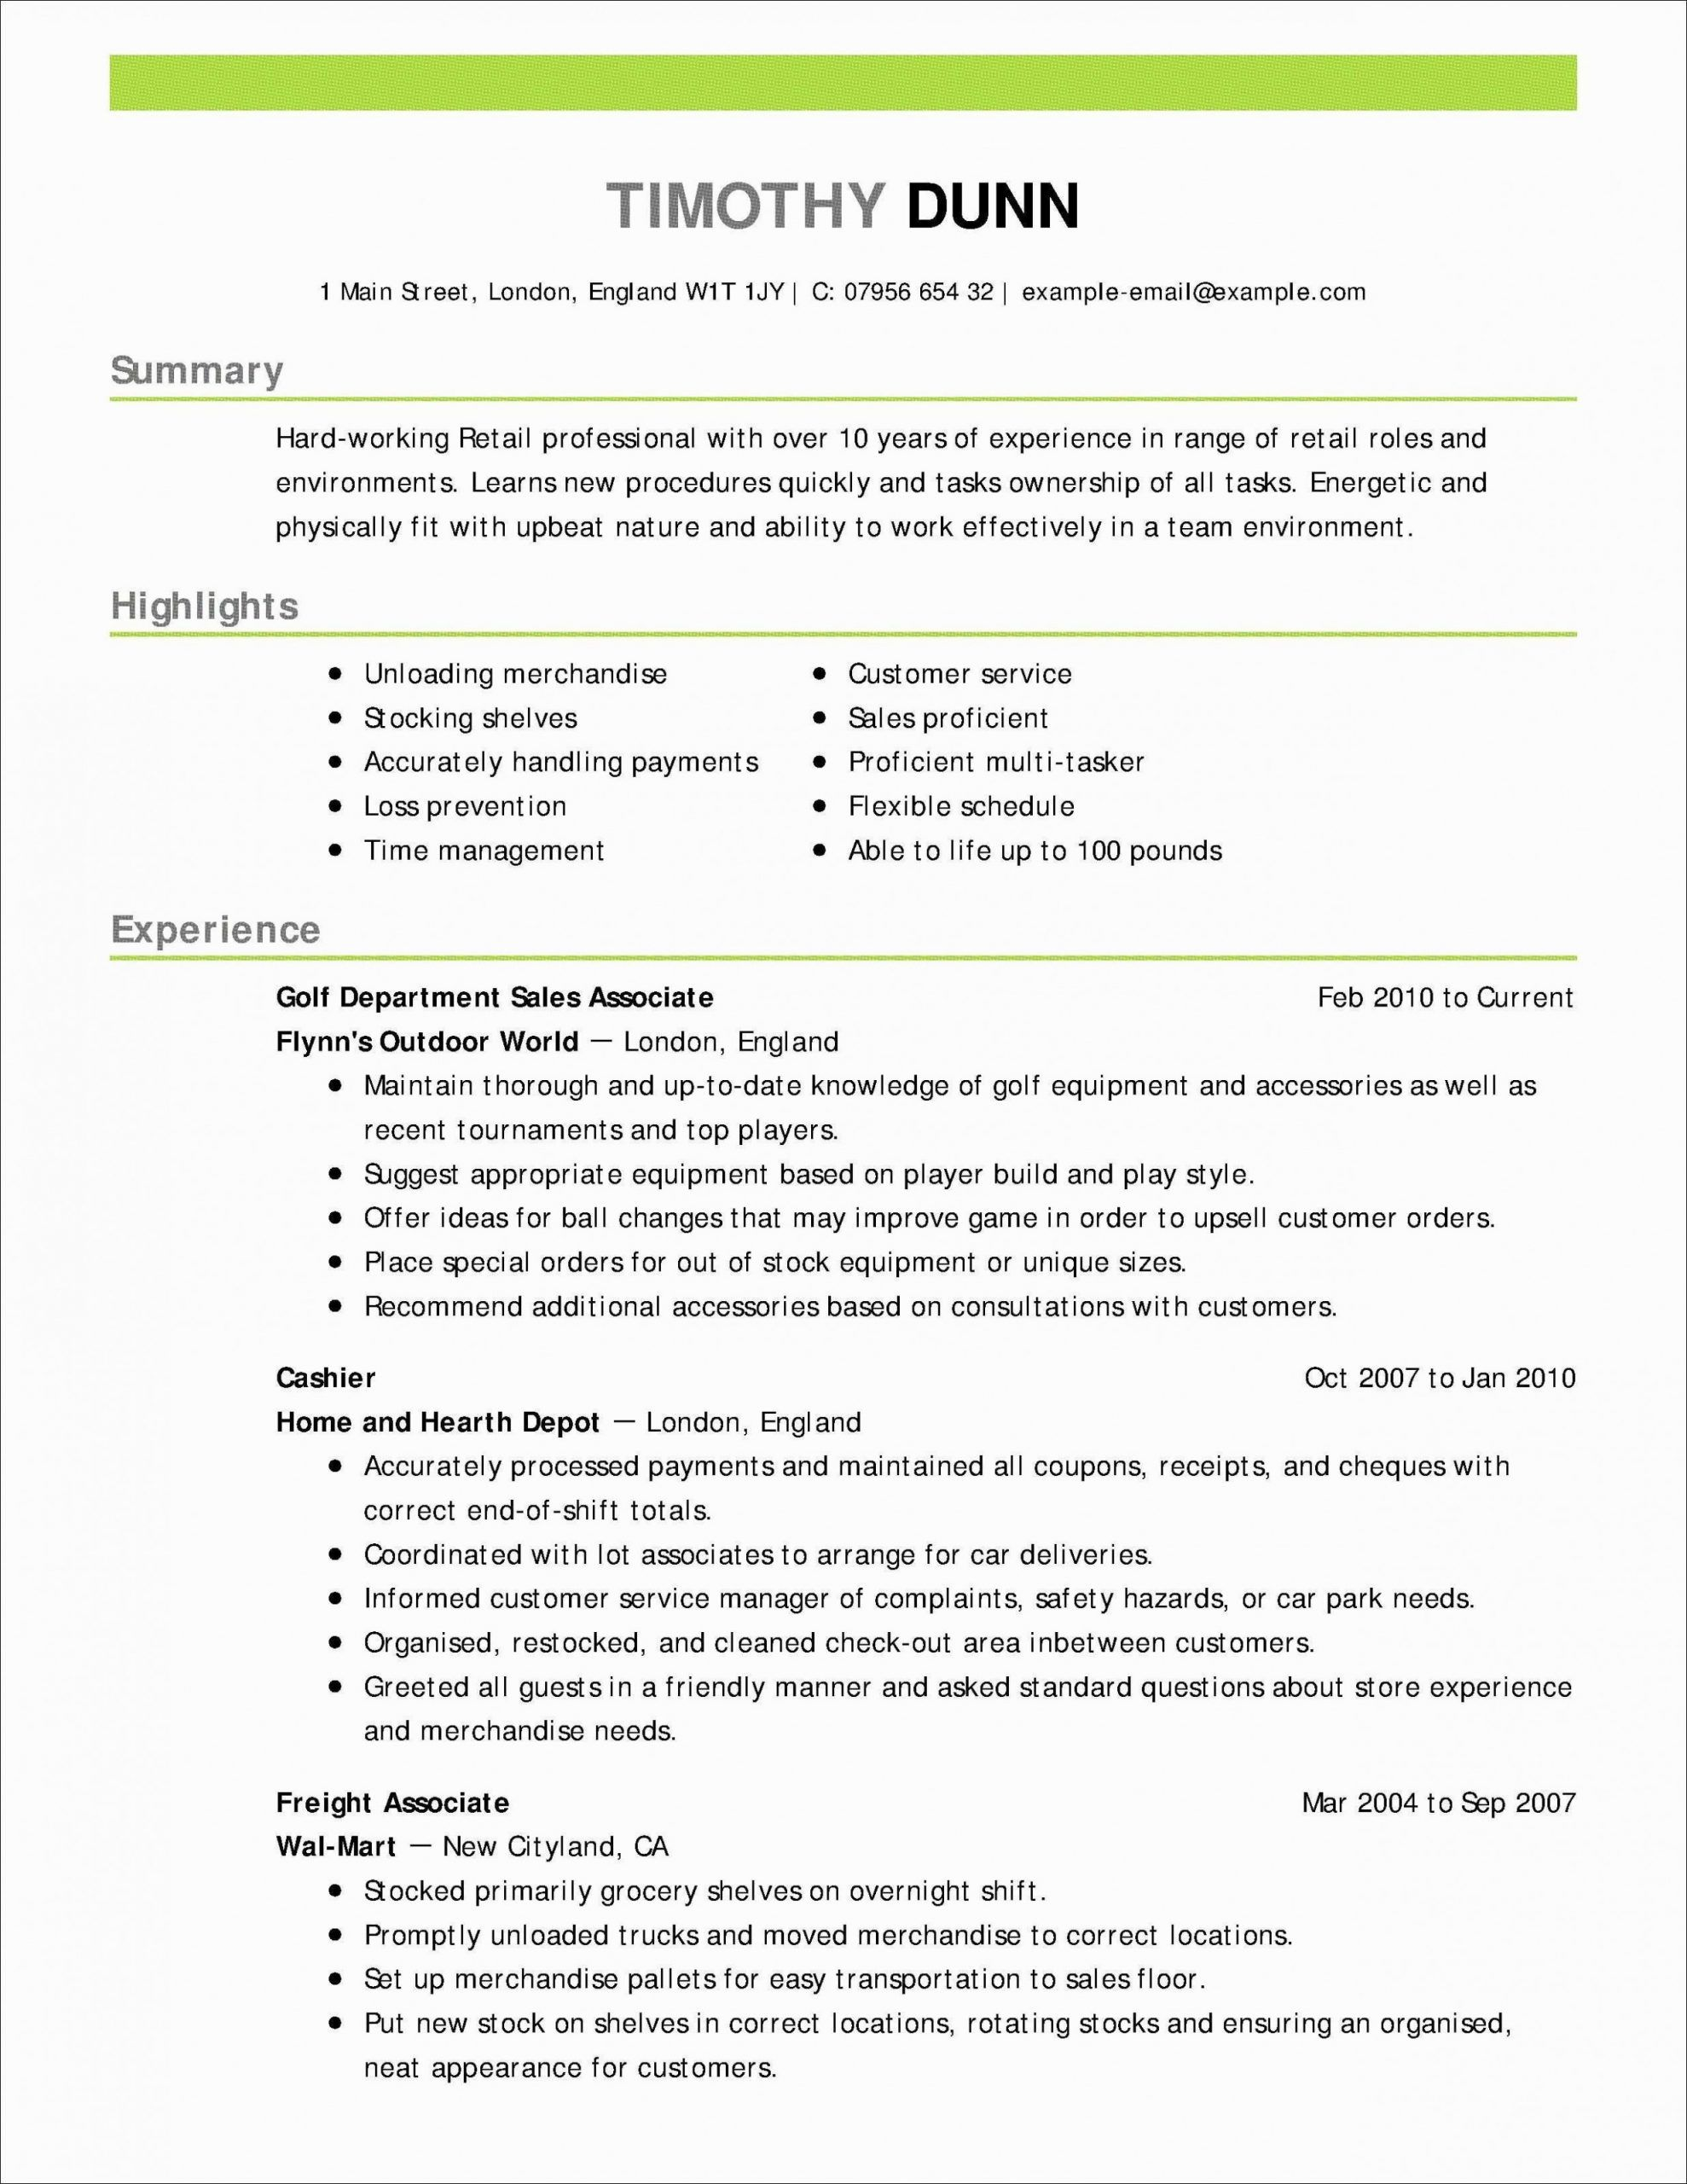 Resume Objective Statements For Customer Service In 2021 Resume Examples Resume Skills Good Resume Examples